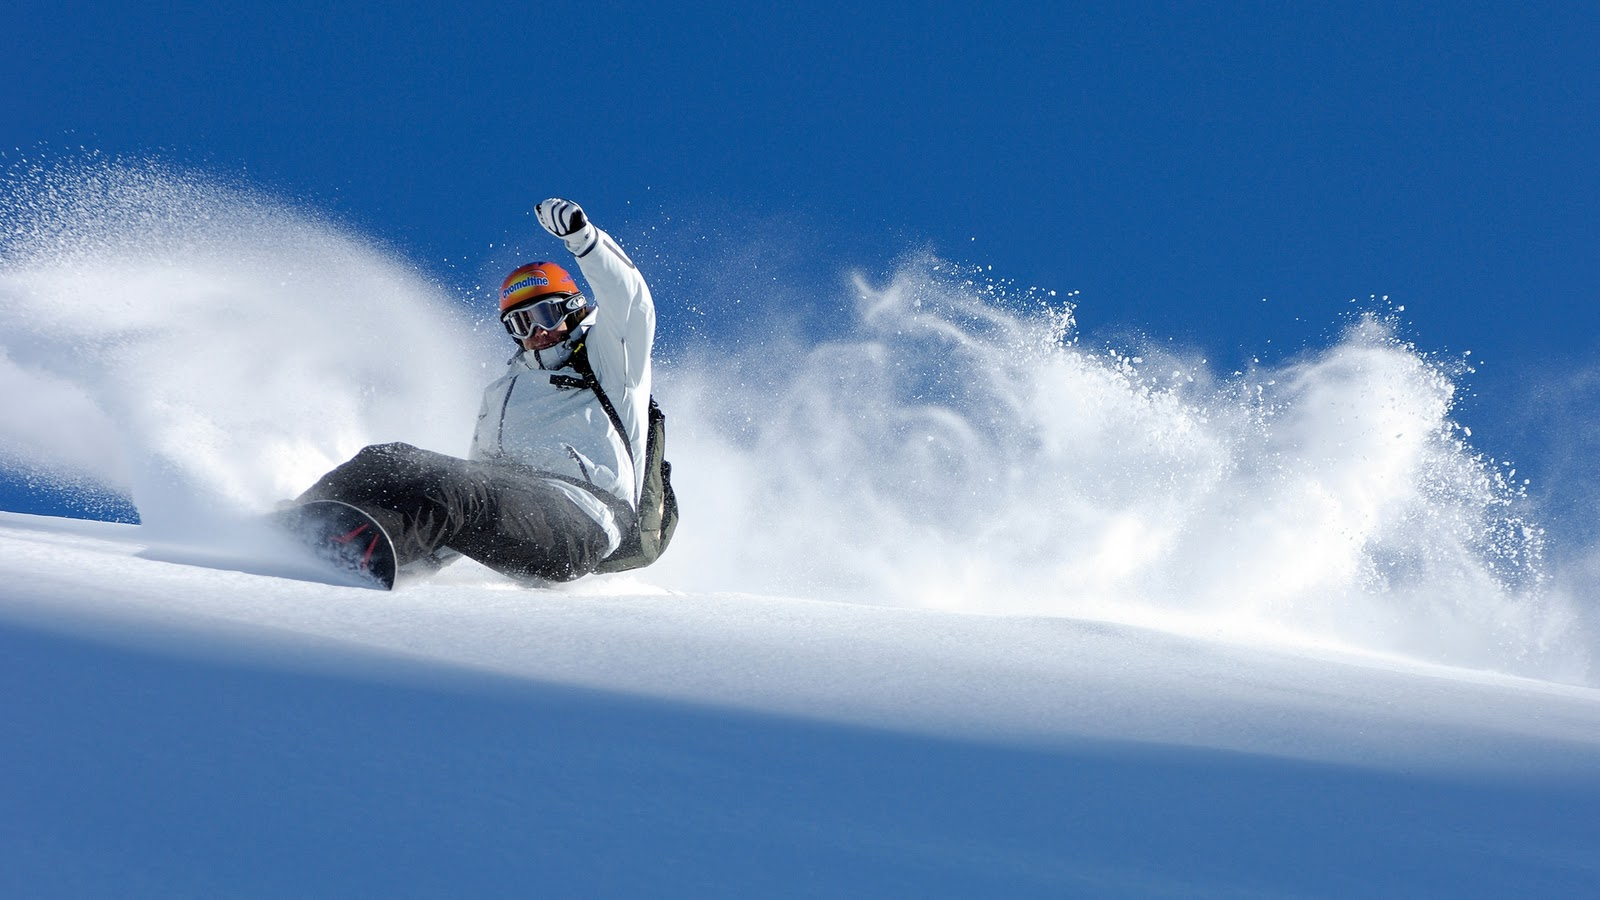 Snowboarding Wallpapers | HD Wallpapers | Desktop Wallapers | High Definition Wallpapers